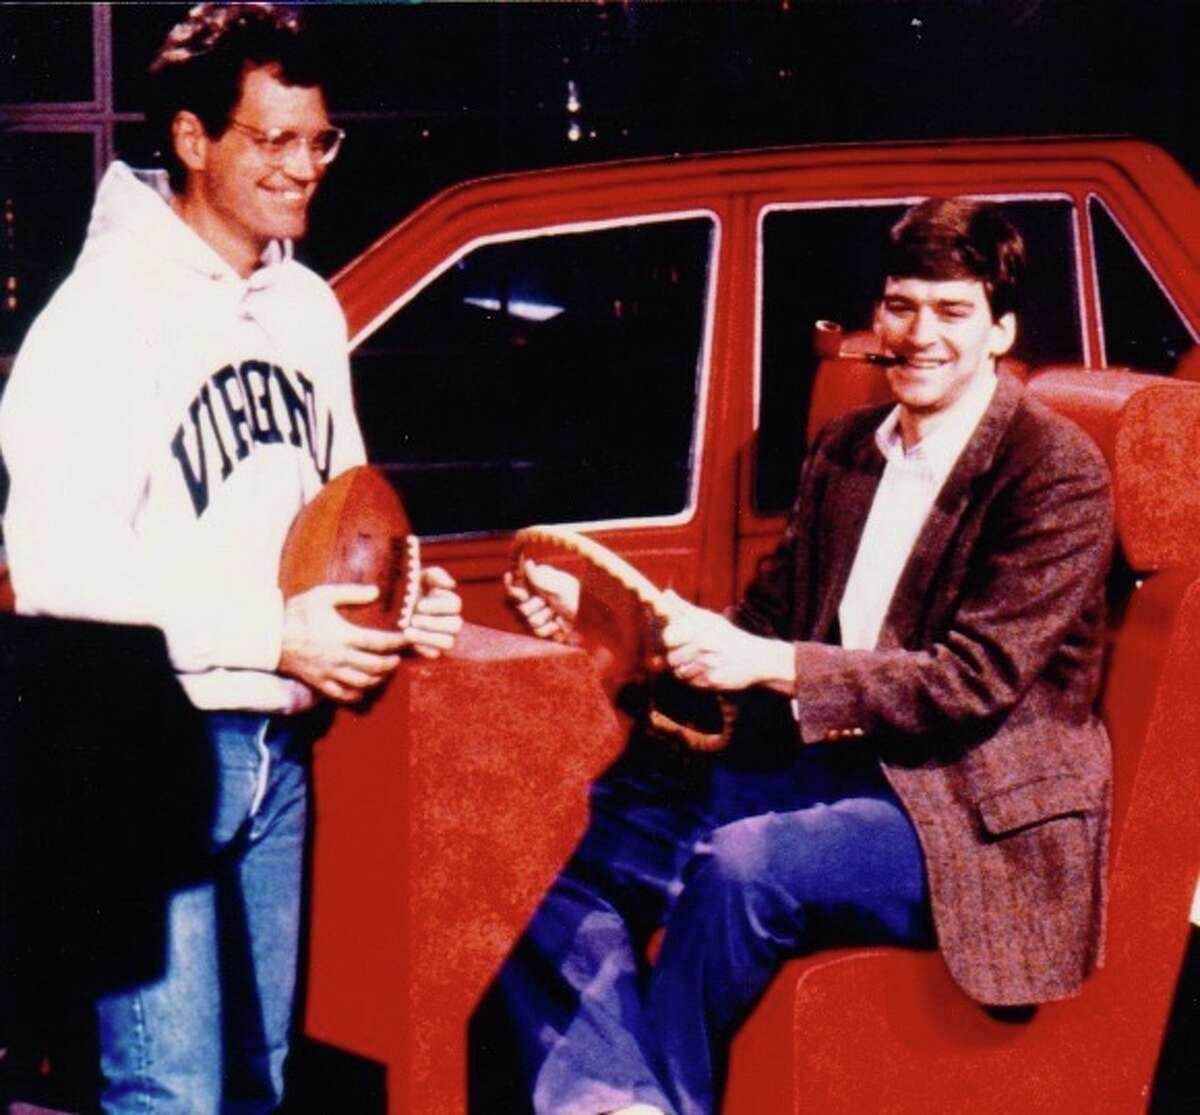 David Letterman and Jeff Martin, backstage, in the 1980s.